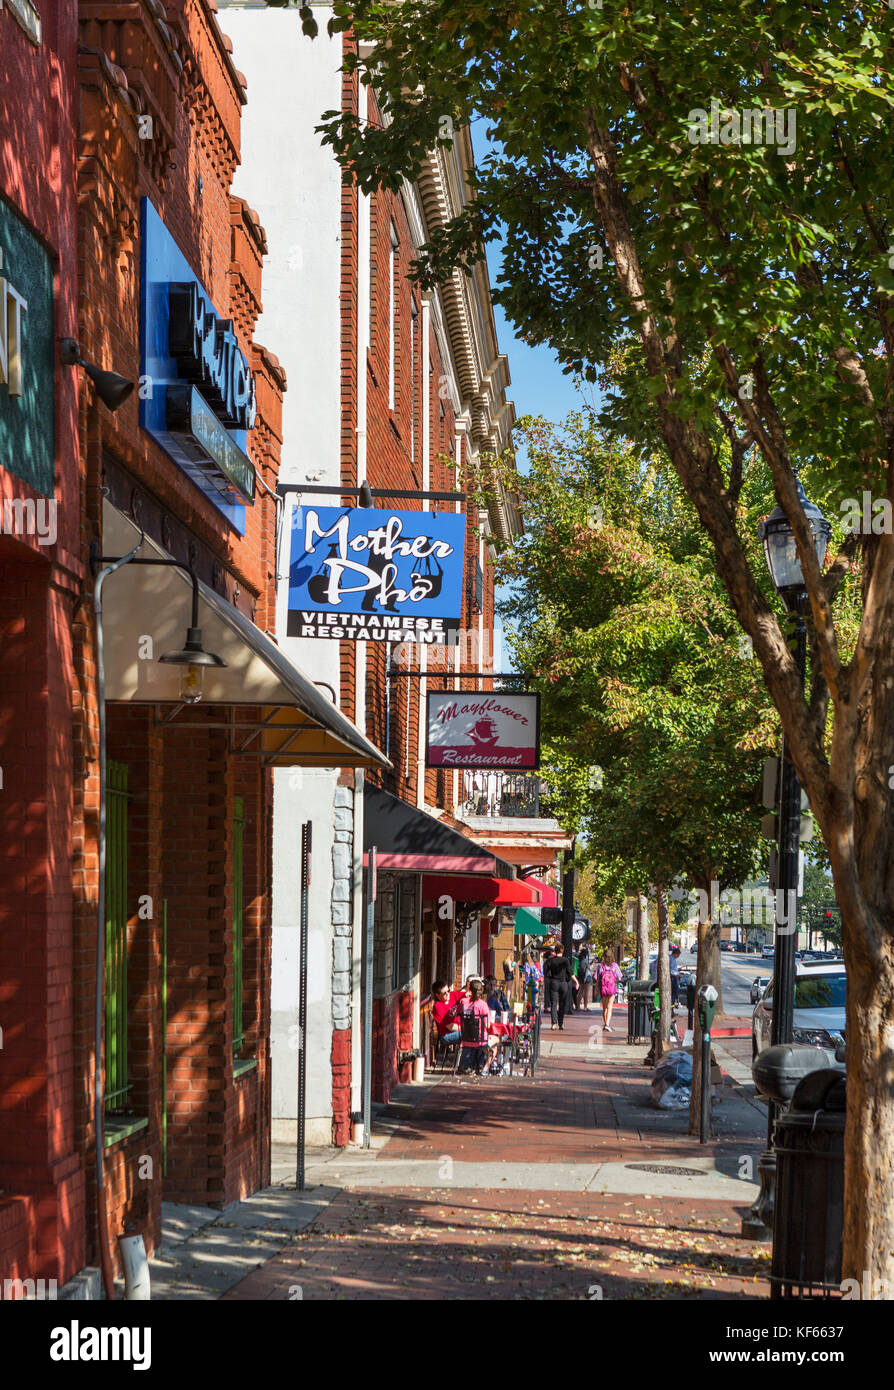 Restaurants on East Broad Street in downtown Athens, Georgia, USA. - Stock Image